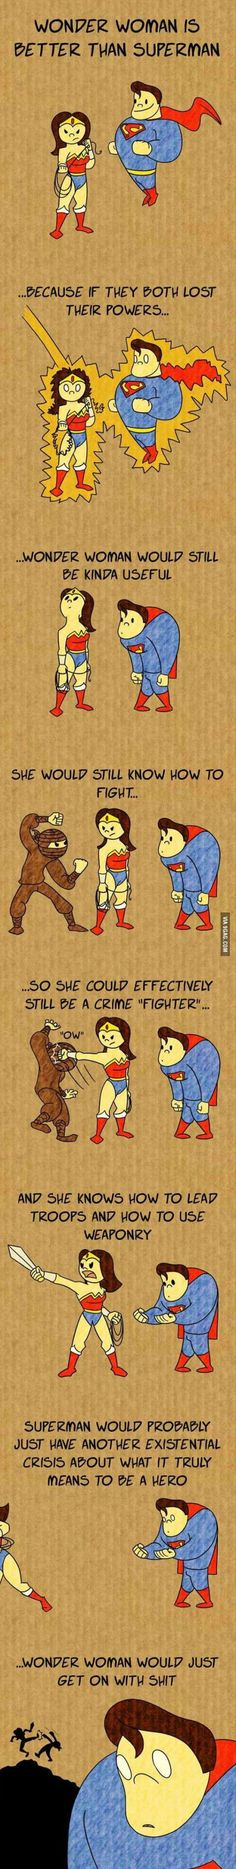 Why Wonder Woman is better than Superman...